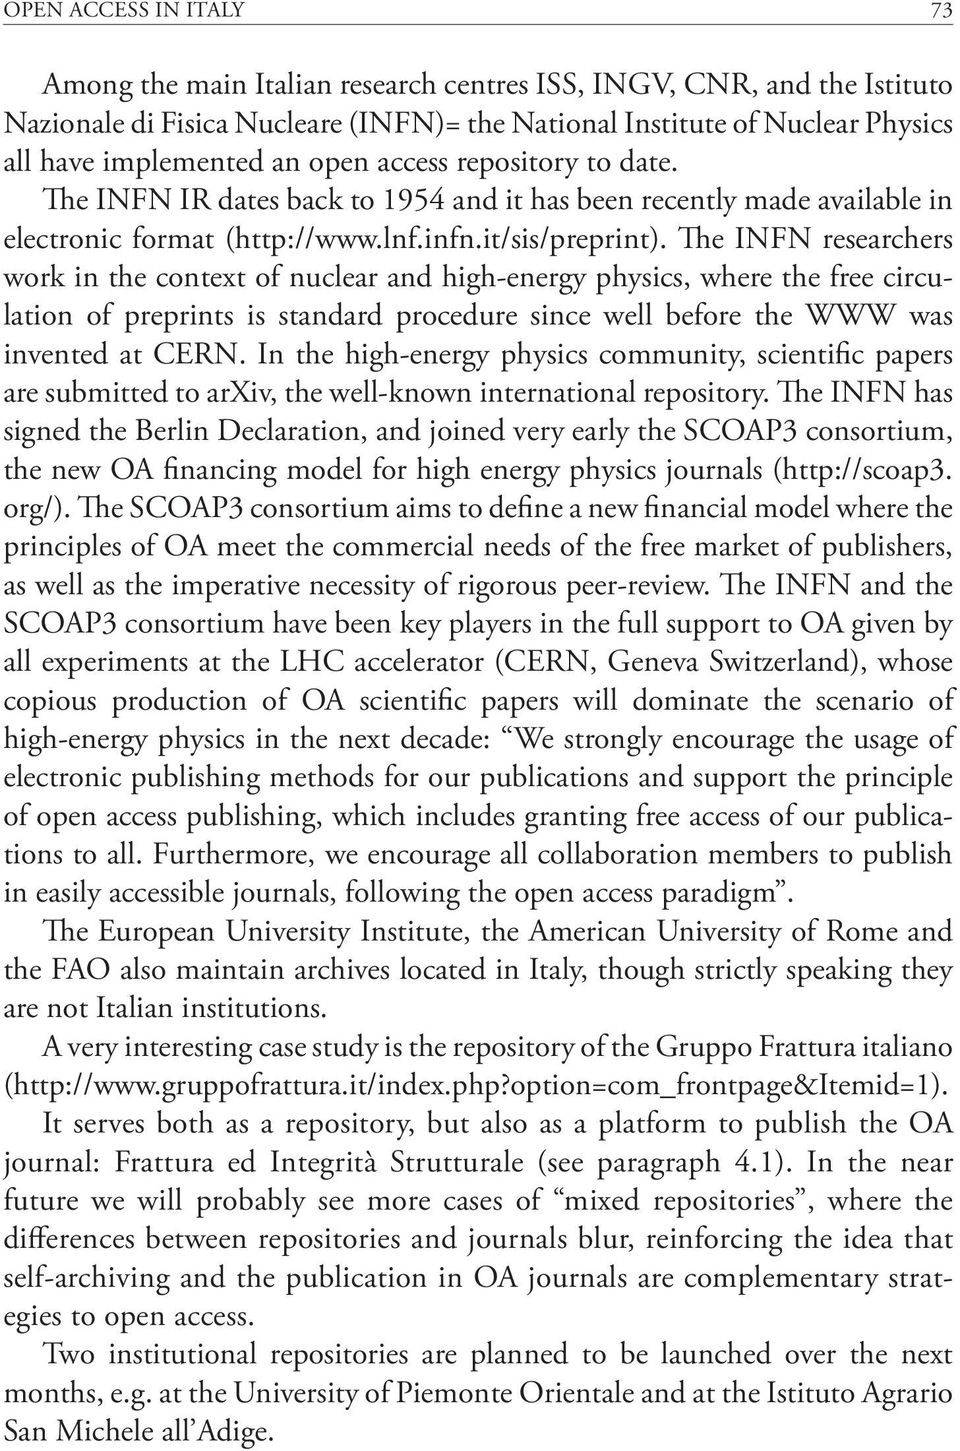 The INFN researchers work in the context of nuclear and high-energy physics, where the free circulation of preprints is standard procedure since well before the WWW was invented at CERN.